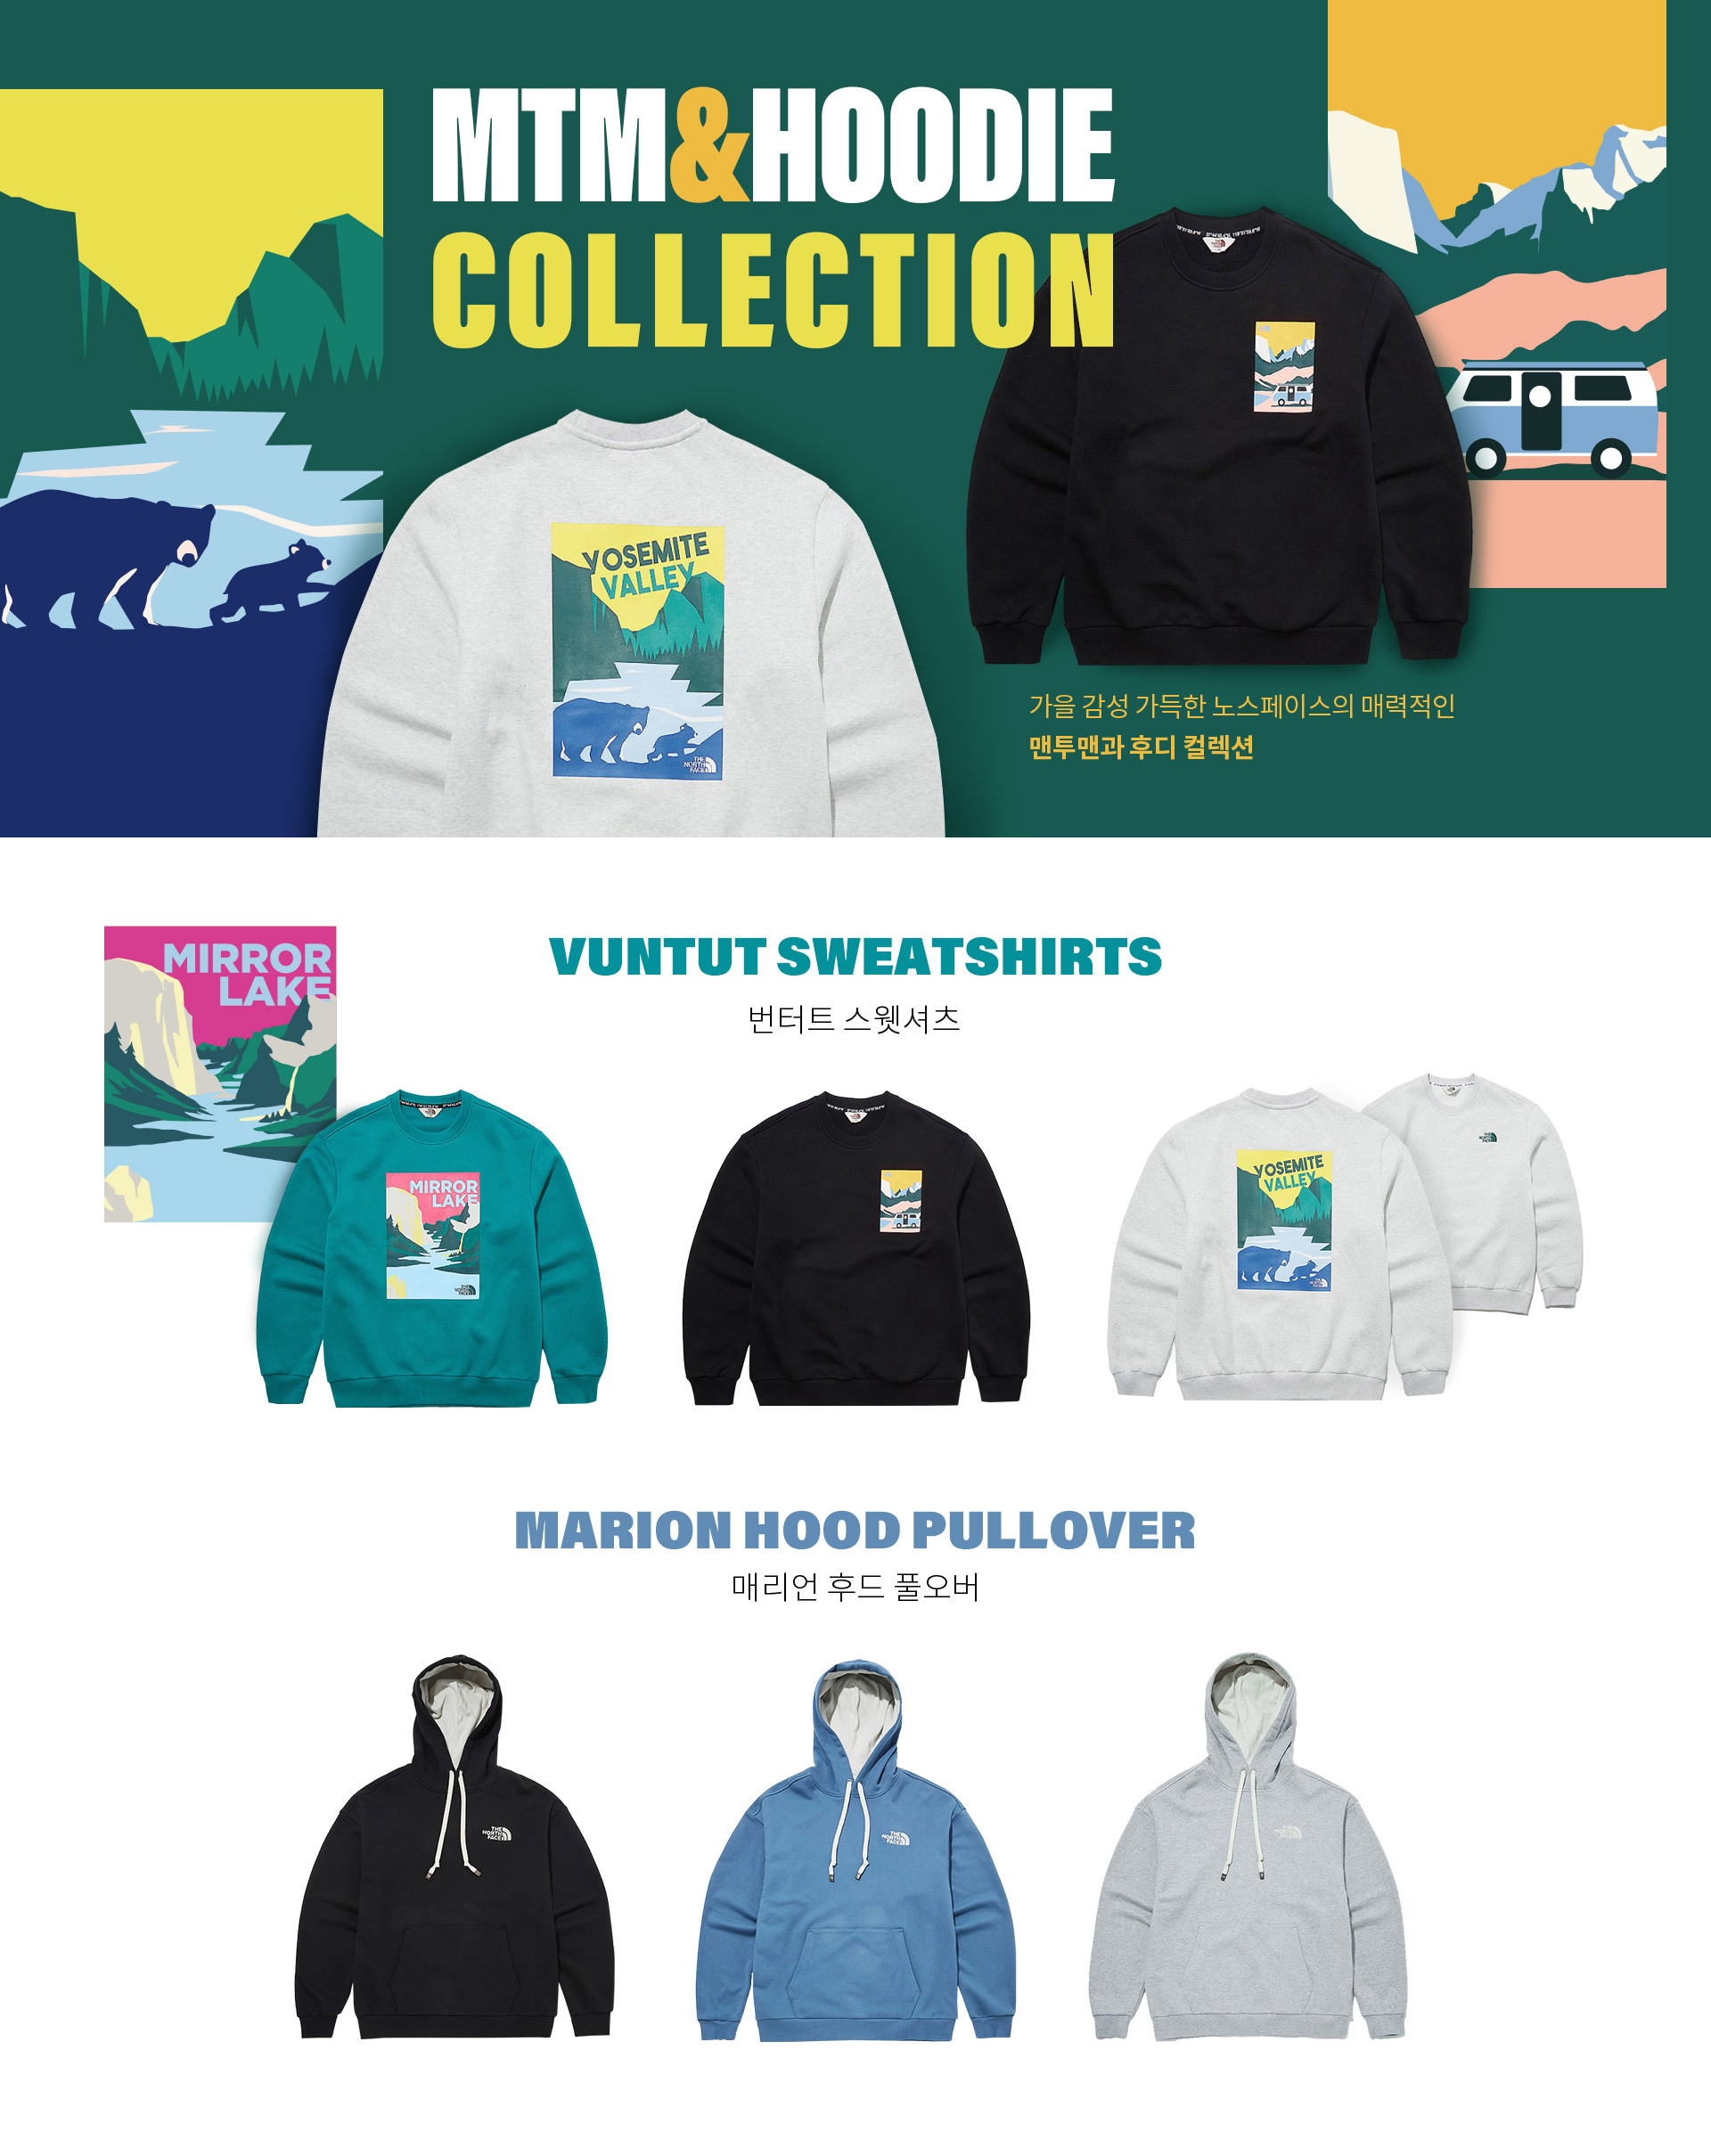 MTM&HOODIE COLLECTION